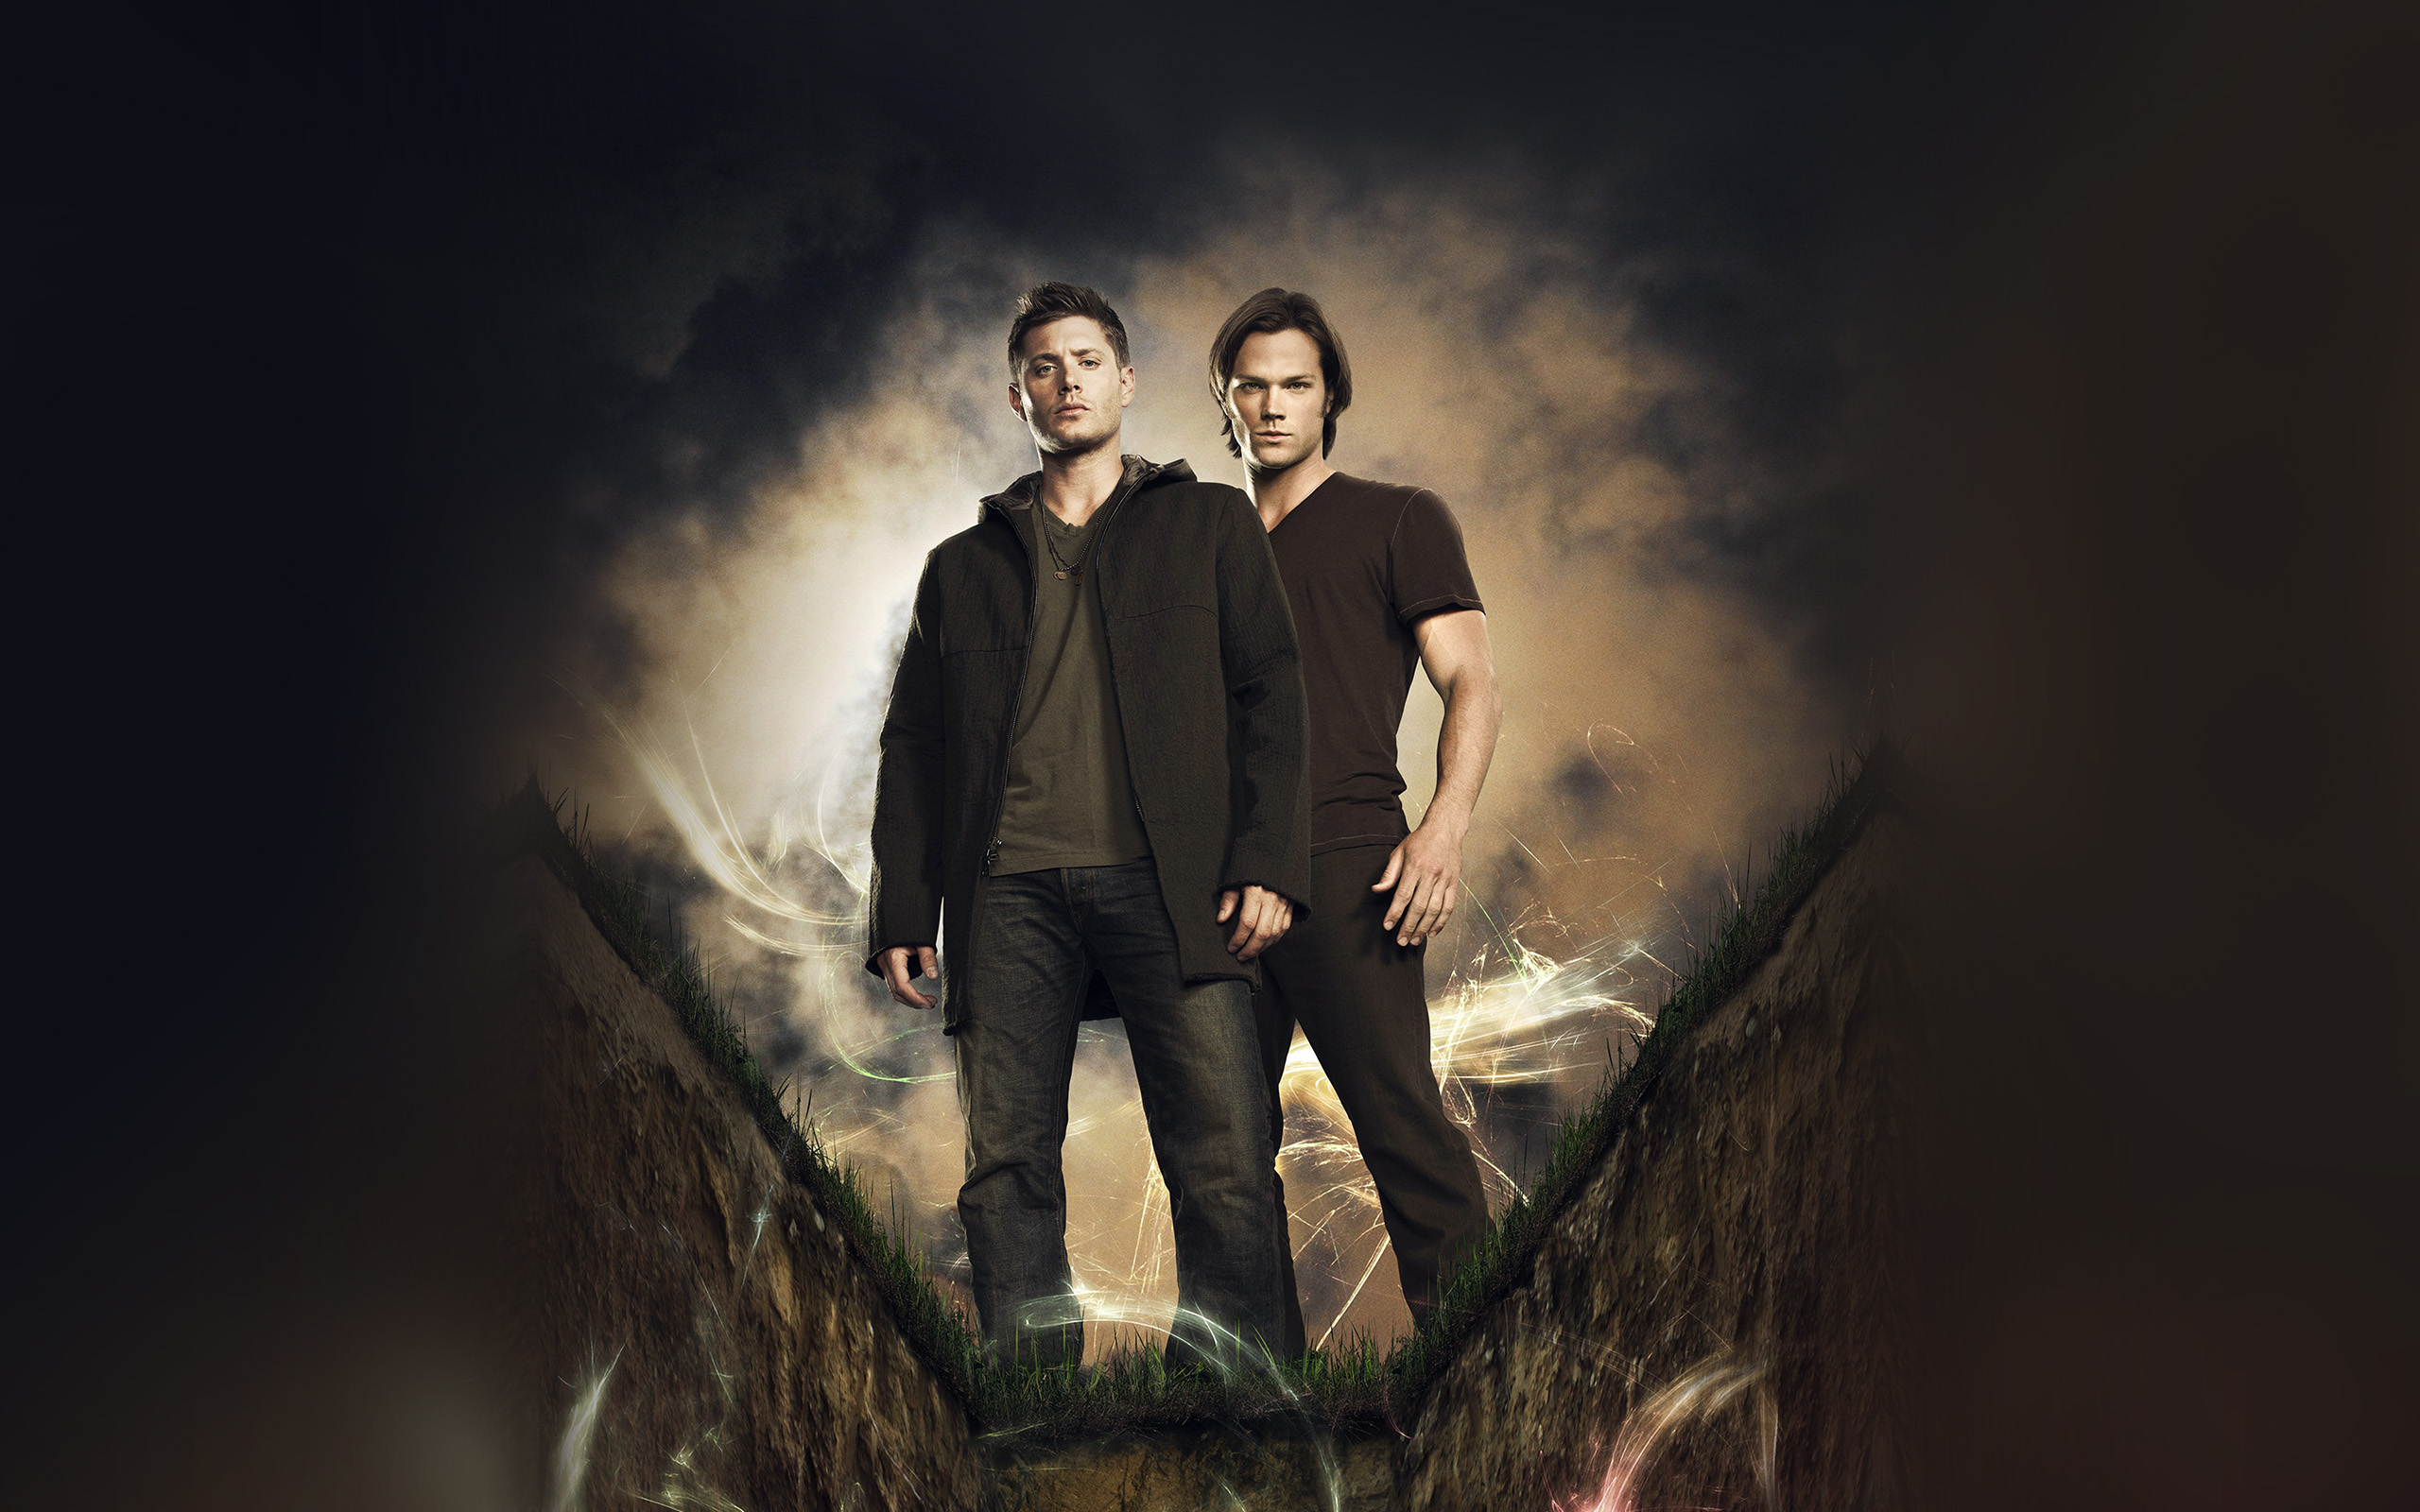 Very Very Cute Wallpapers Bc80 Supernatural Film Tvshow Art Illustration Wallpaper